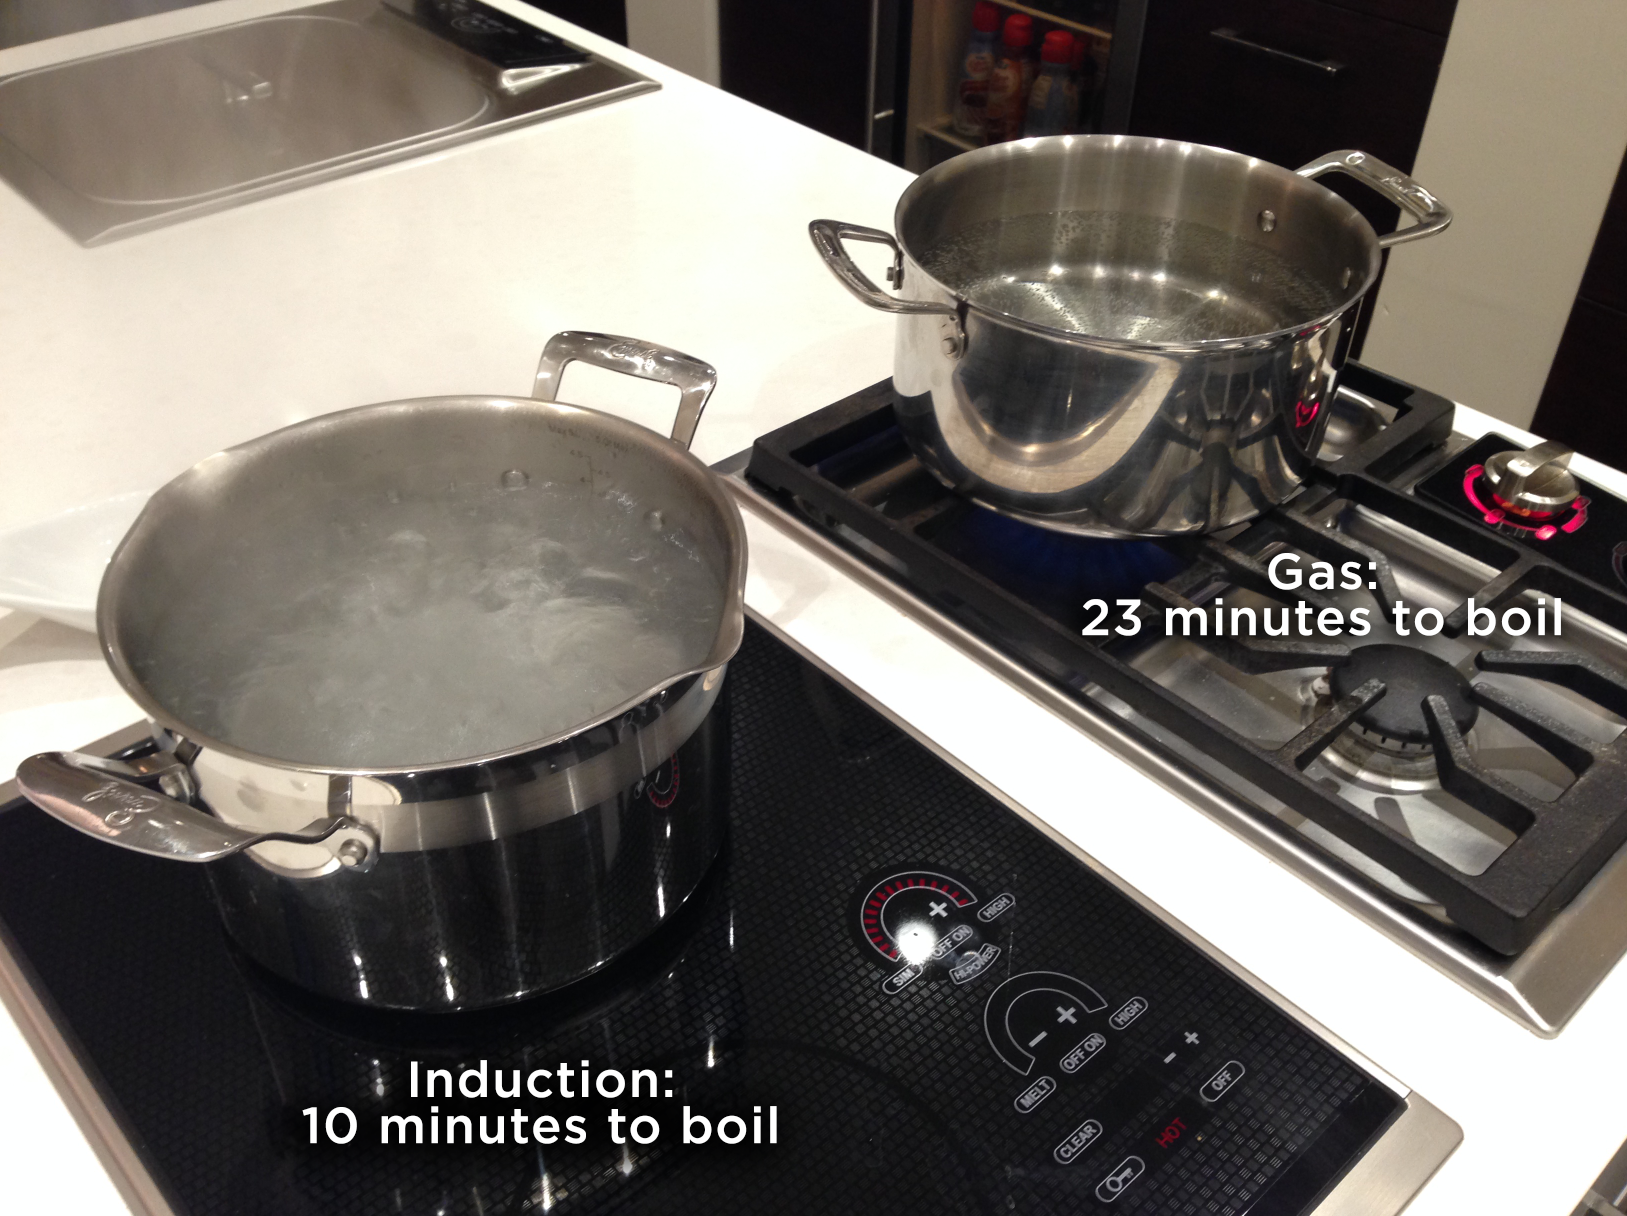 There Are Several Other Reasons We Love Induction The Cooktop Is Flat So Serves As Additional Counter Space It Cooks Fa Gas Cooktop Cooktop Induction Cooktop